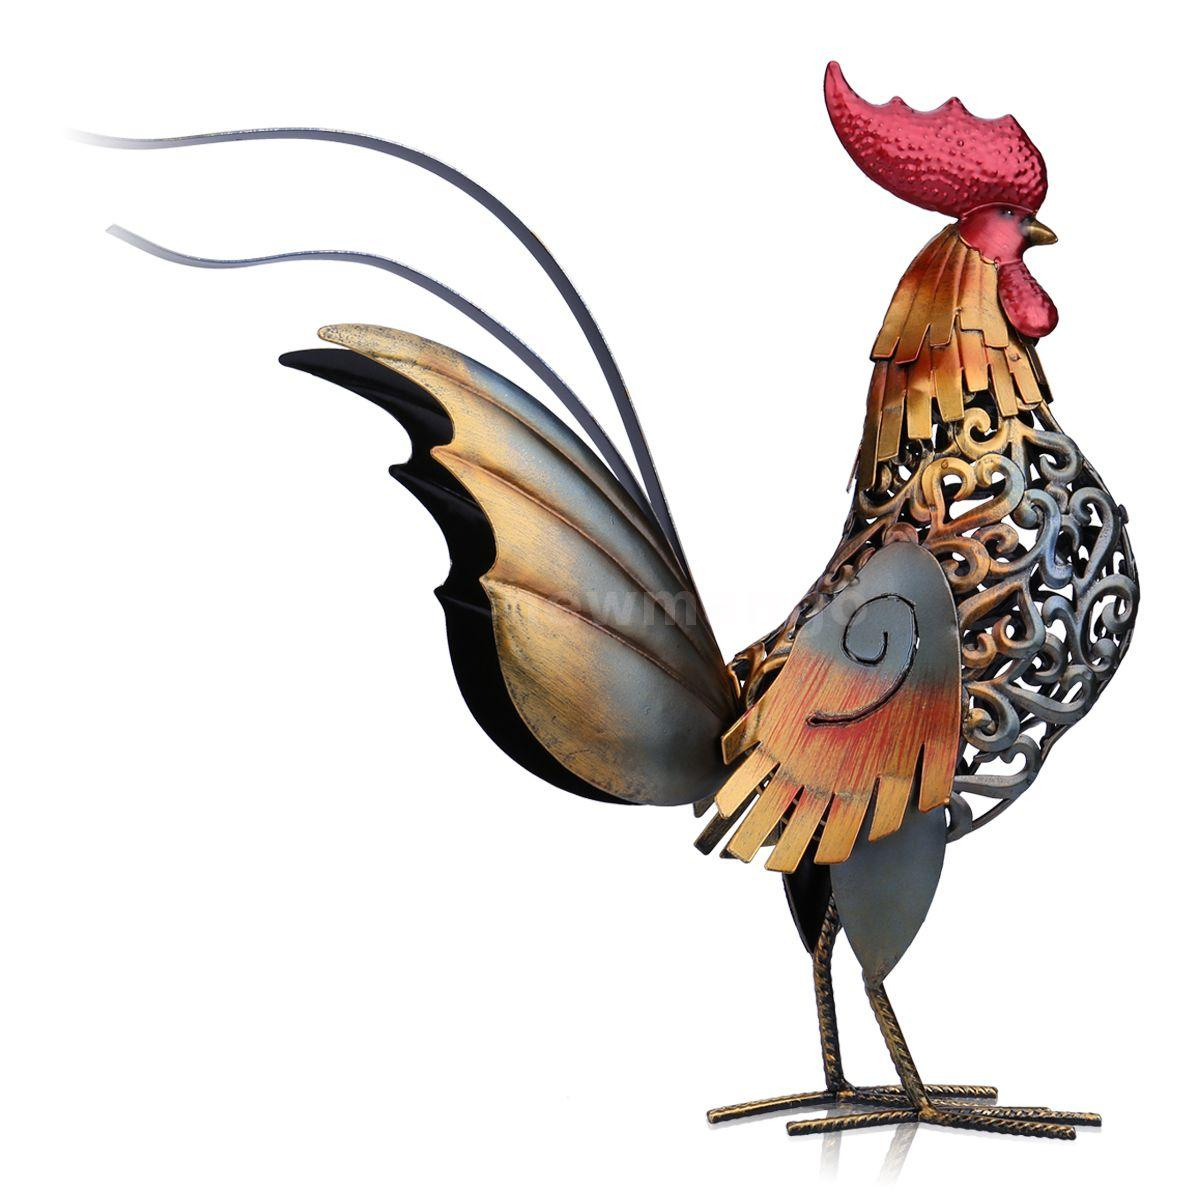 Tooarts Metal Figurine Iron Rooster Home Decor Articles: Tooarts Metal Modern Sculpture Carved Iron Art Rooster